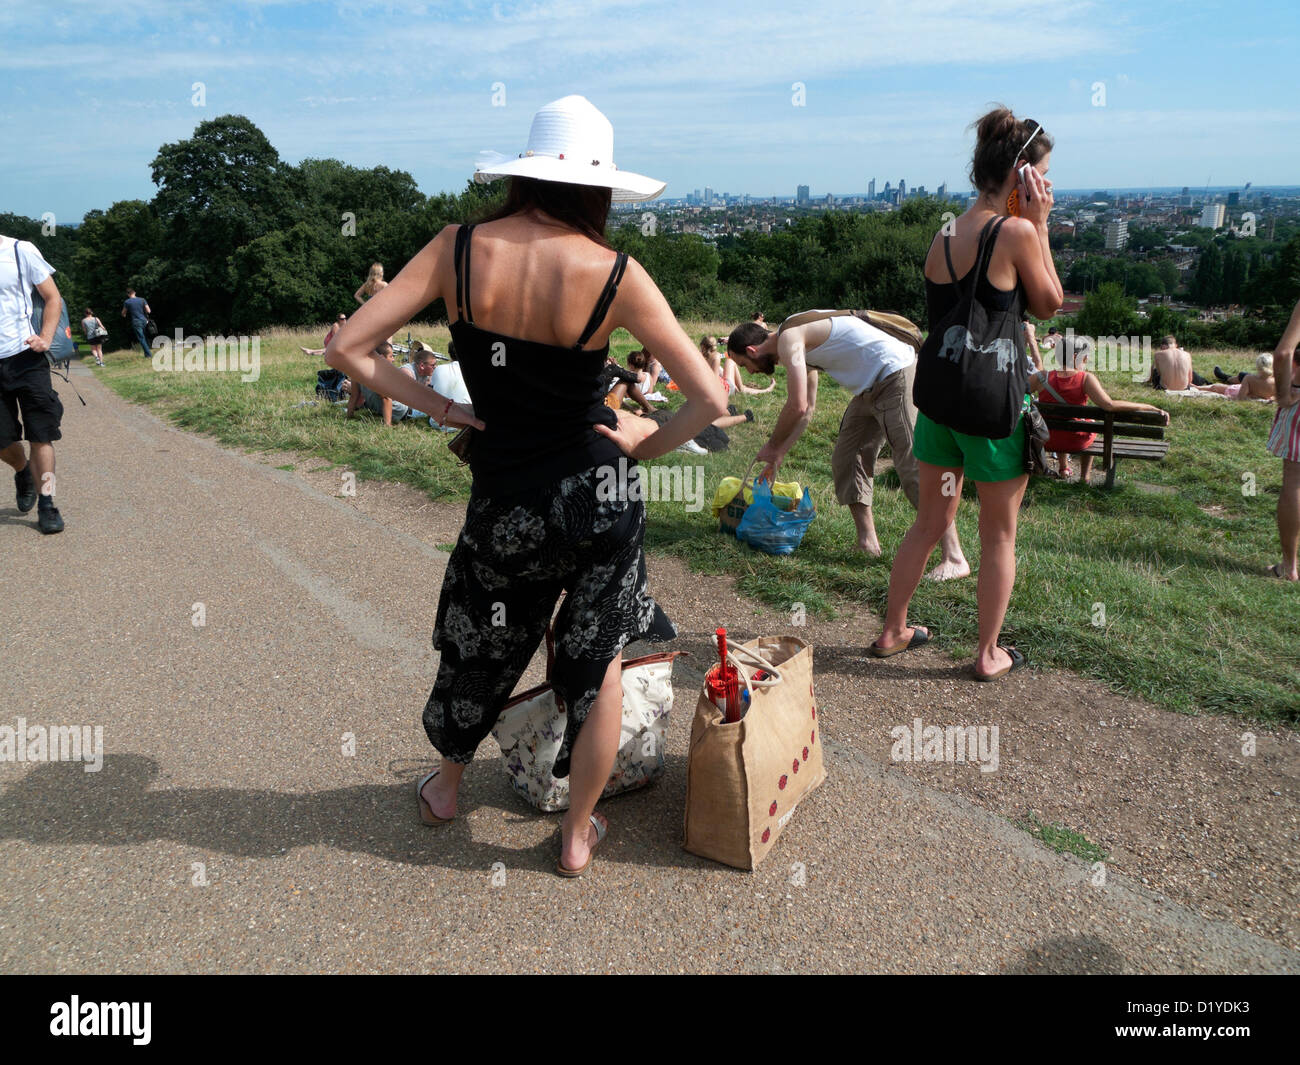 People on Parliament Hill packing up their bags after spending a hot day in August Hampstead Heath in North London - Stock Image